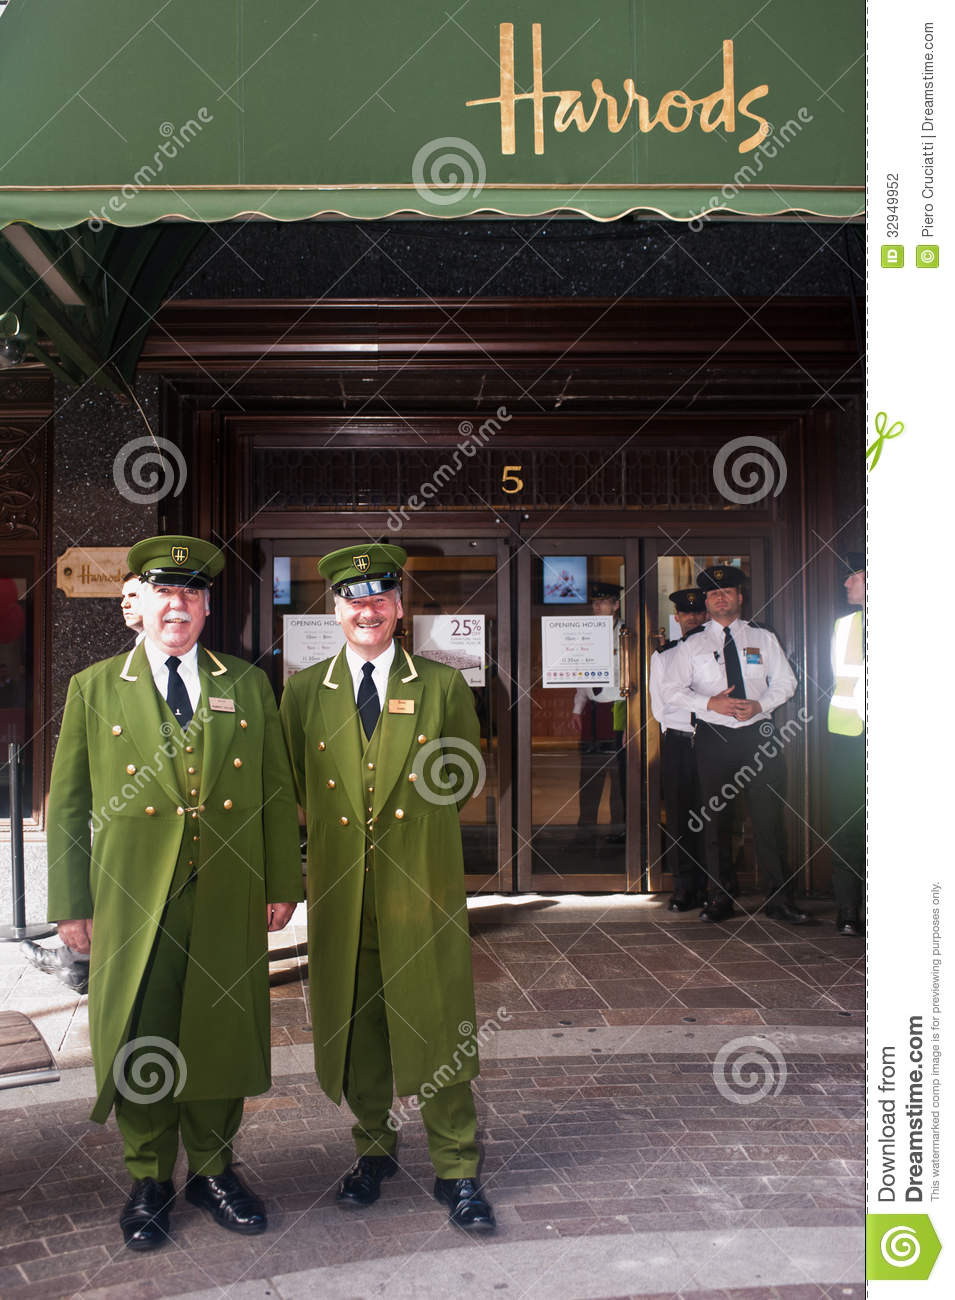 Harrods Concierges In London Editorial Photography Image